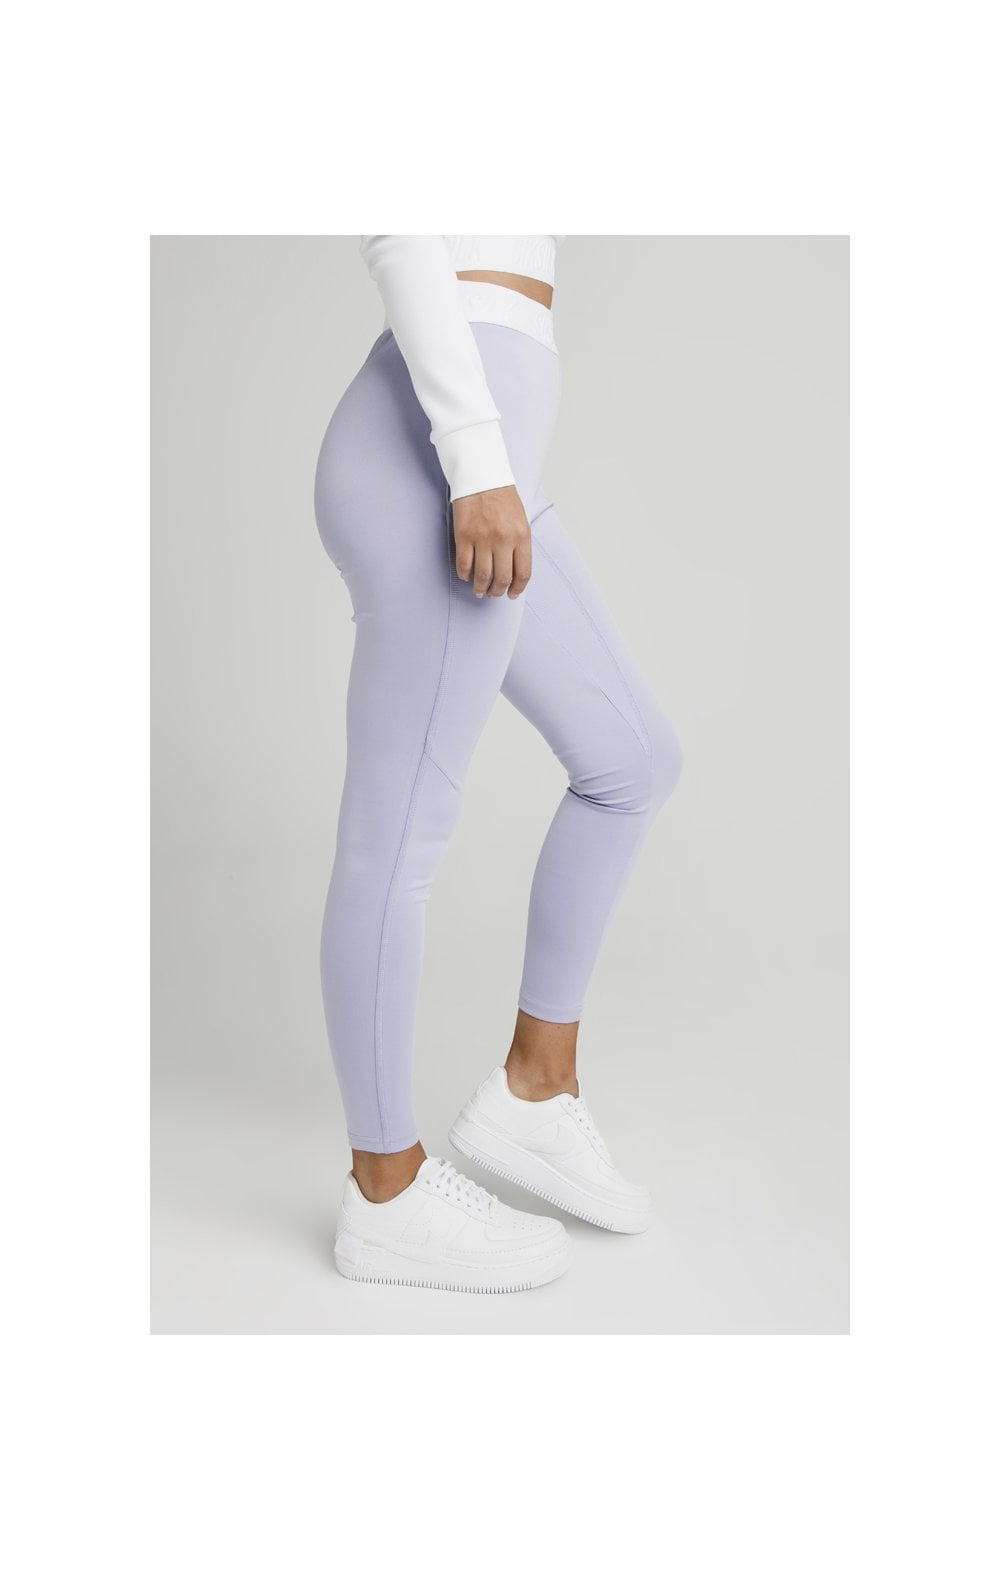 Load image into Gallery viewer, SikSilk Lilac Haze Track Pants - Lilac (4)